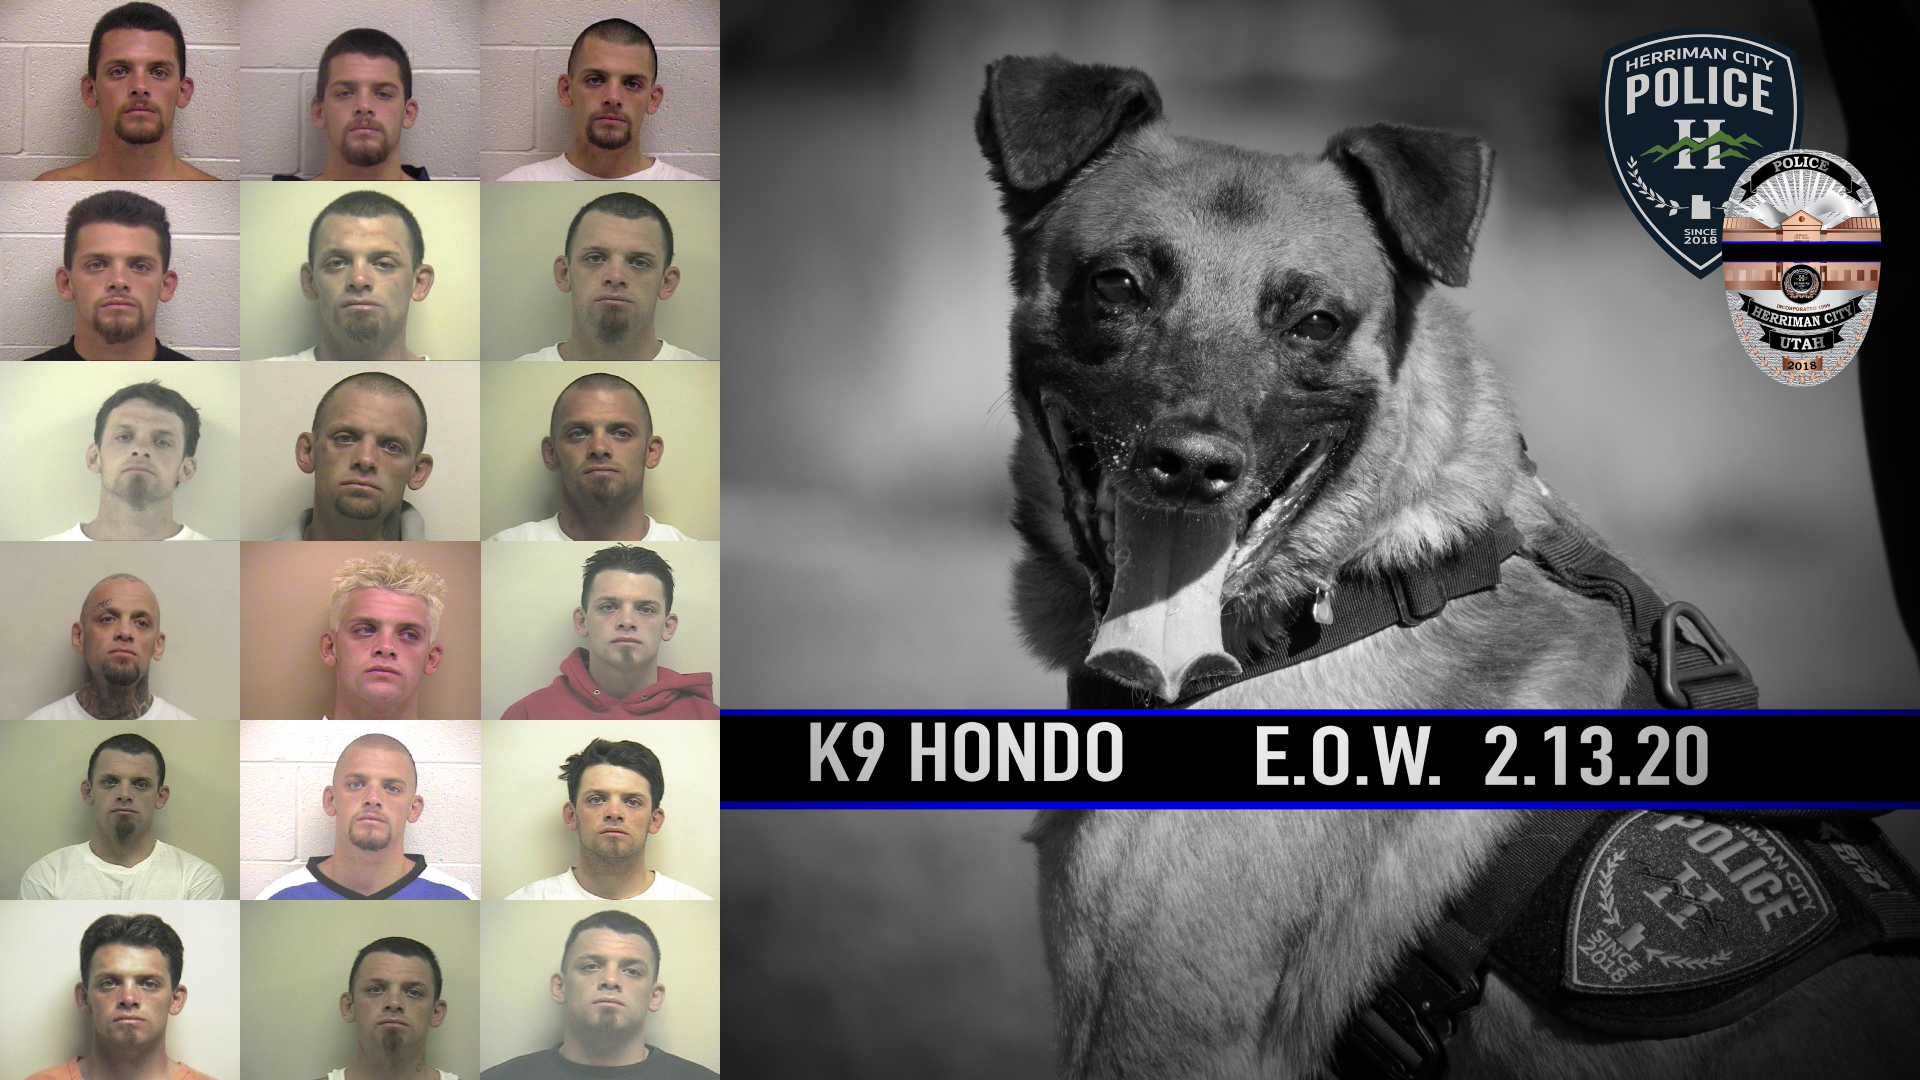 Gallery of booking photos of a fugitive who was killed, along with Herriman PD K9 Hondo, during an apprehension operation on Feb. 13, 2020 in Salt Lake City. (KUTV)<p></p>